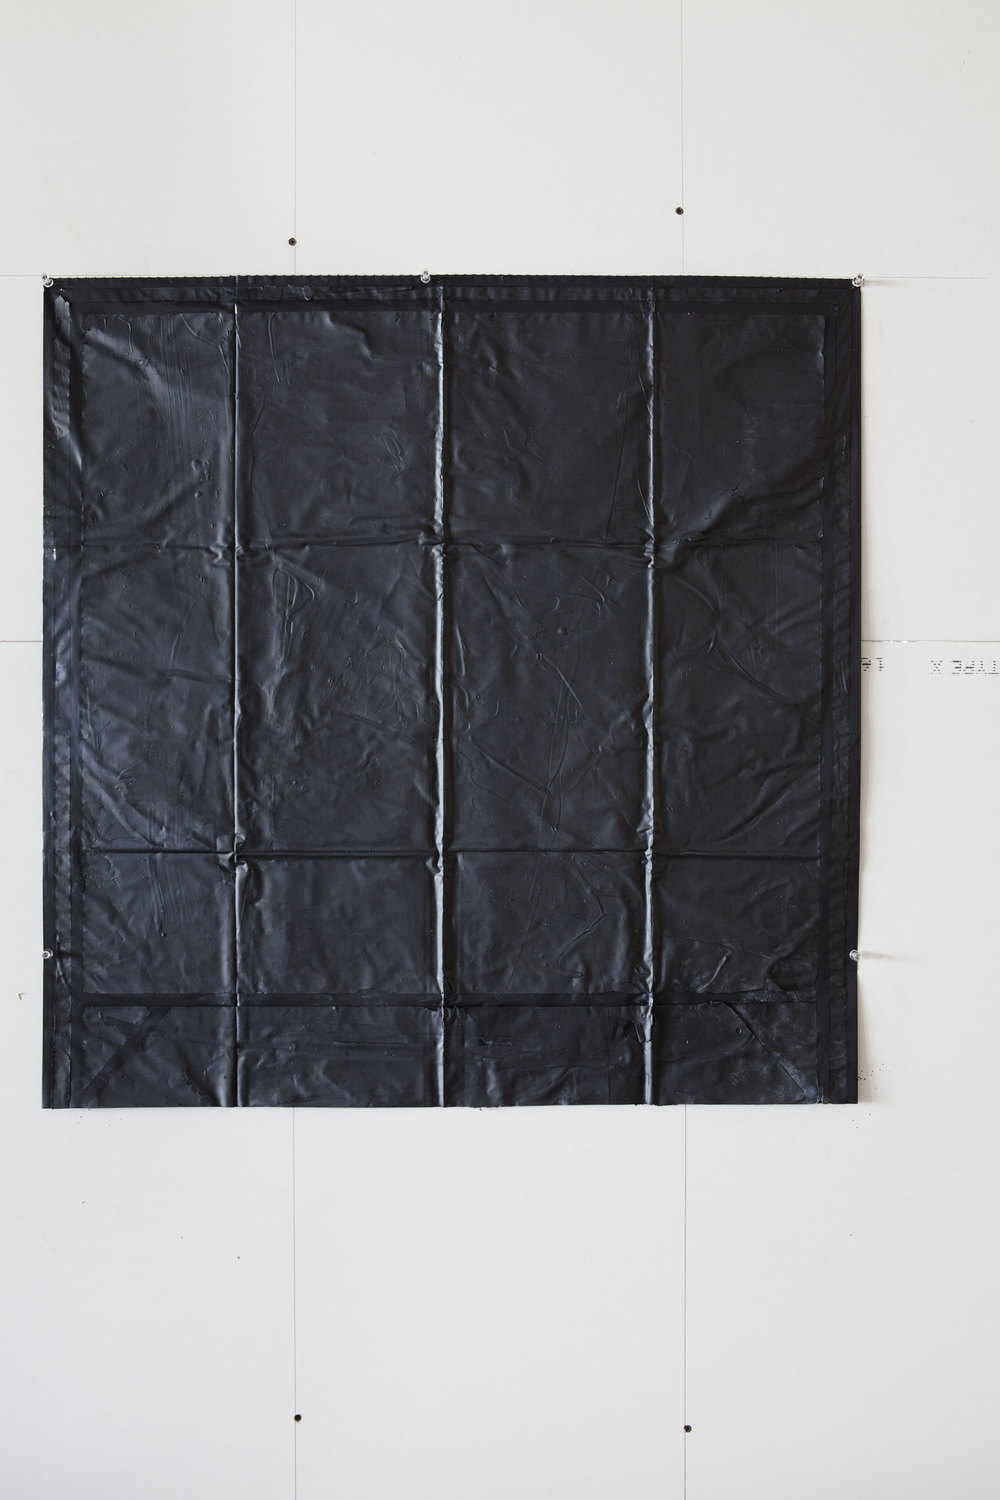 Movements outside Square, garbage bag ( Black Box inside square ) 2013    American coal tar on black garbage bag   Size: Around 90 X 90 cm   Photographer: Amina Hasen